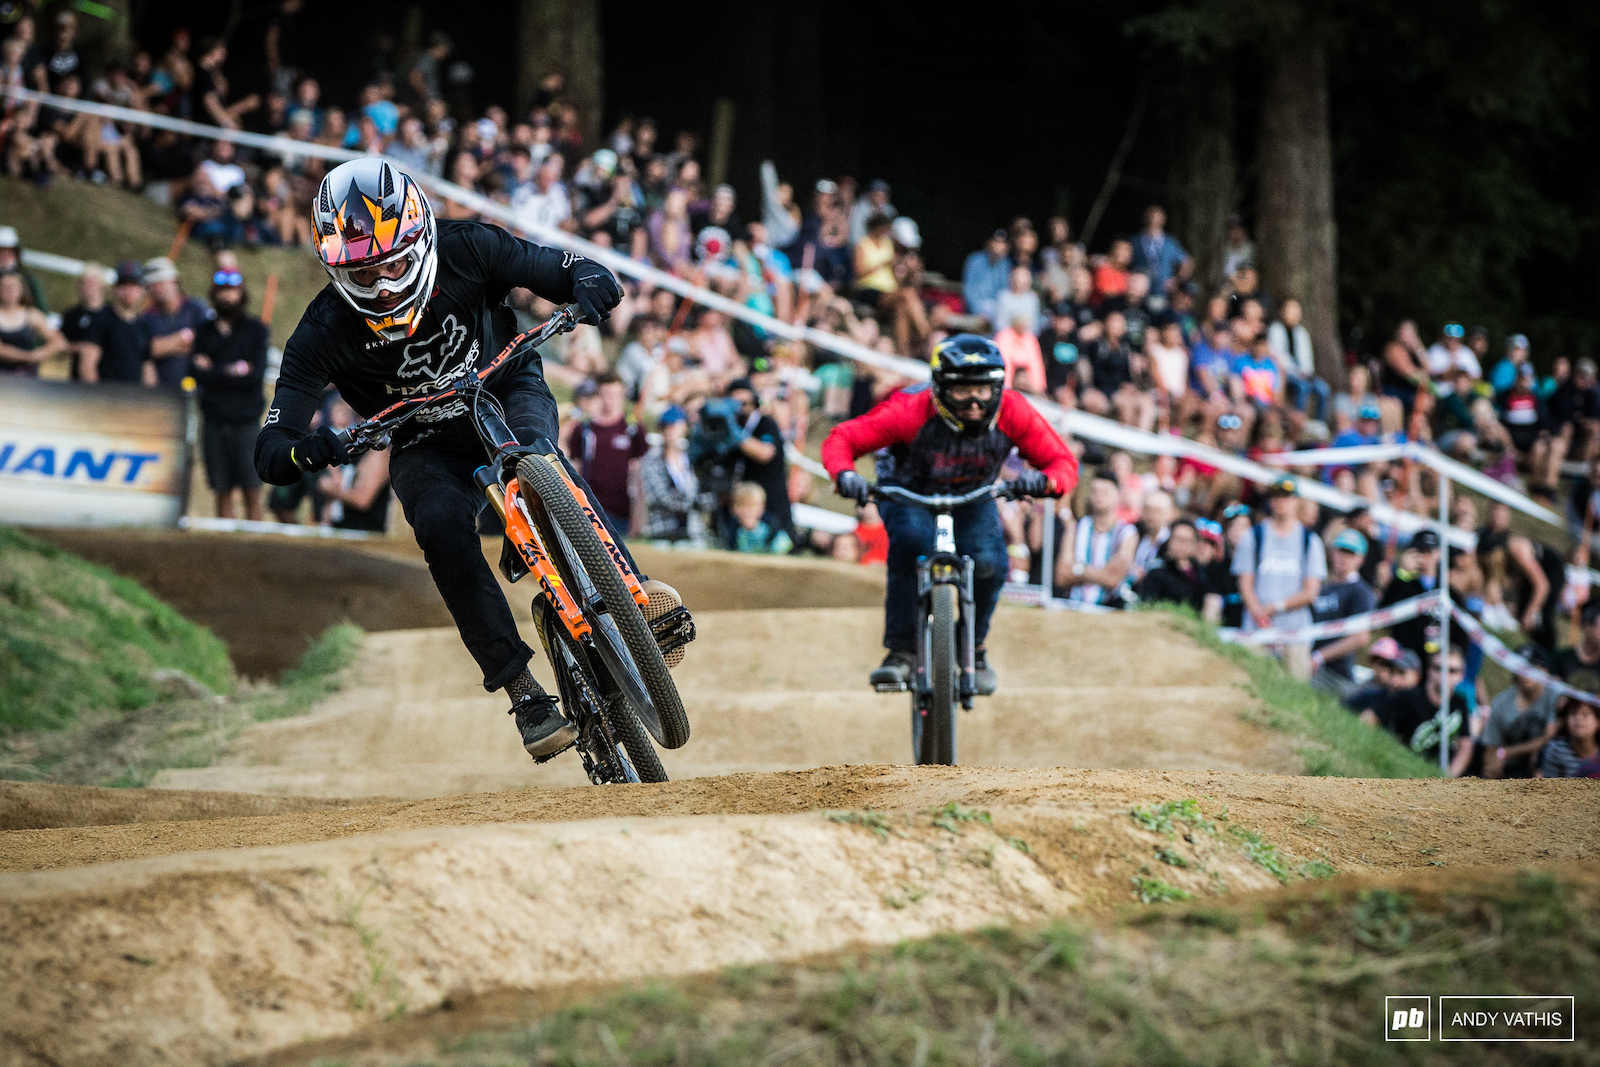 Bas Van Steenbergen running on speed but lacked a few points in the tricks department to move on further.